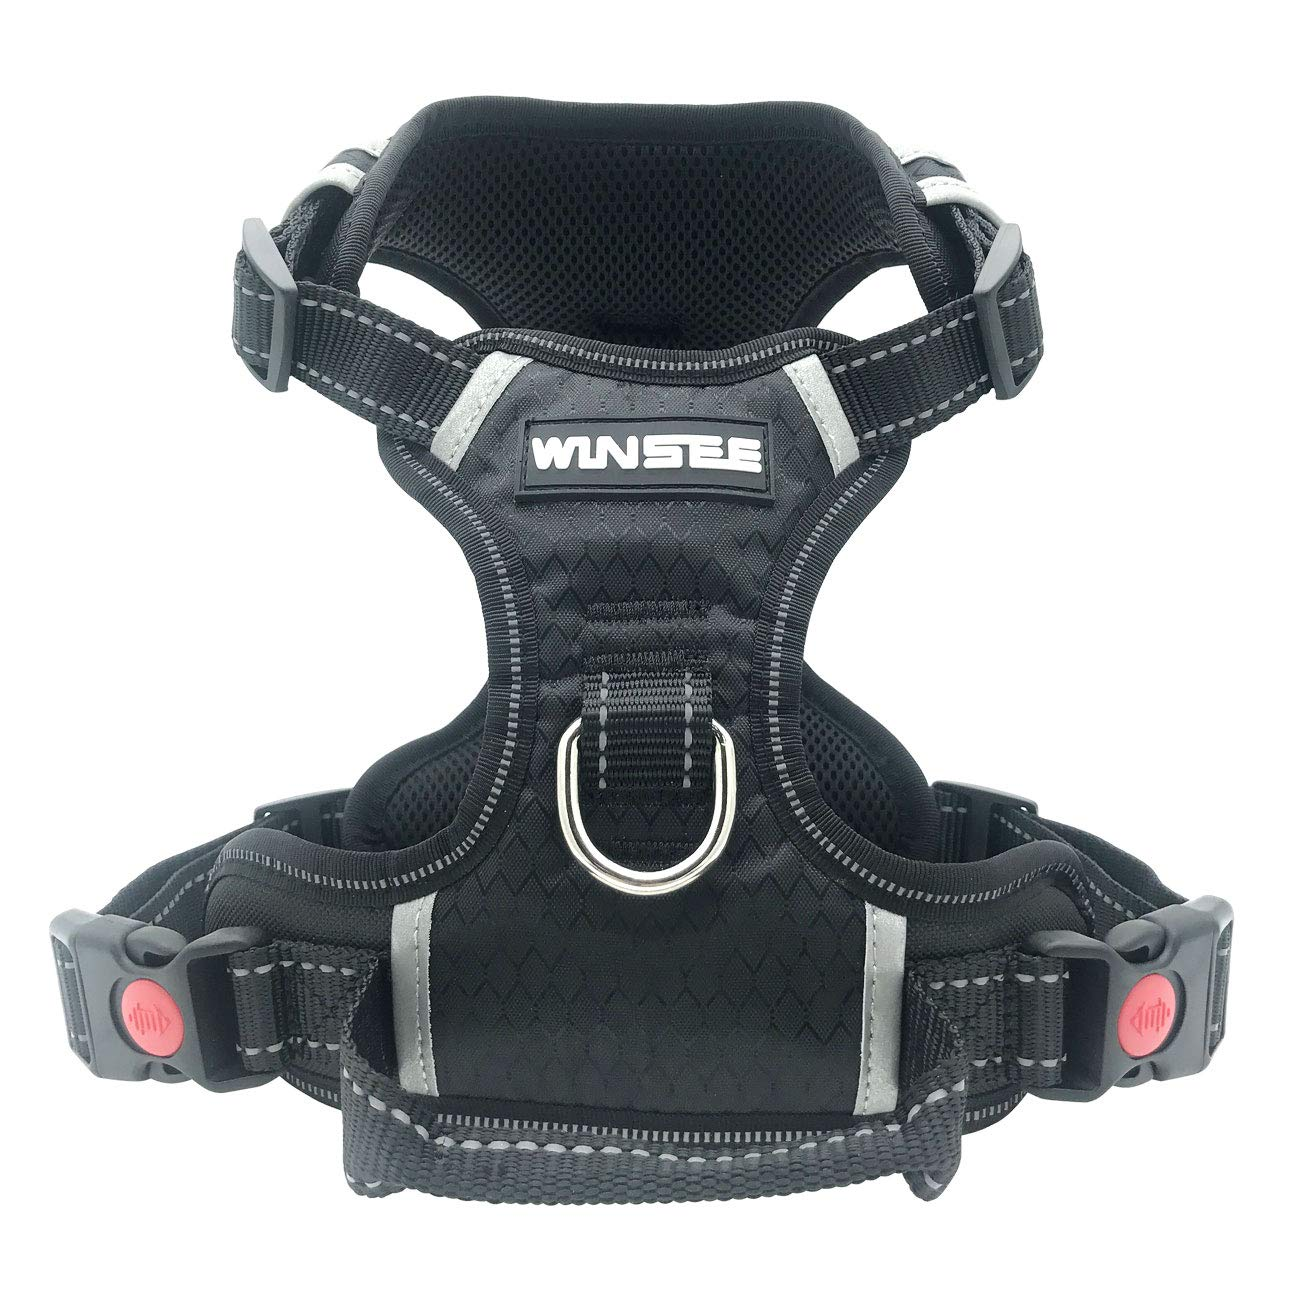 WINSEE Dog harness, no-pull comfort pet vest harness safety Adjustable dog vest harness for large dogs Reflective Oxford Material Easy Control Harness black